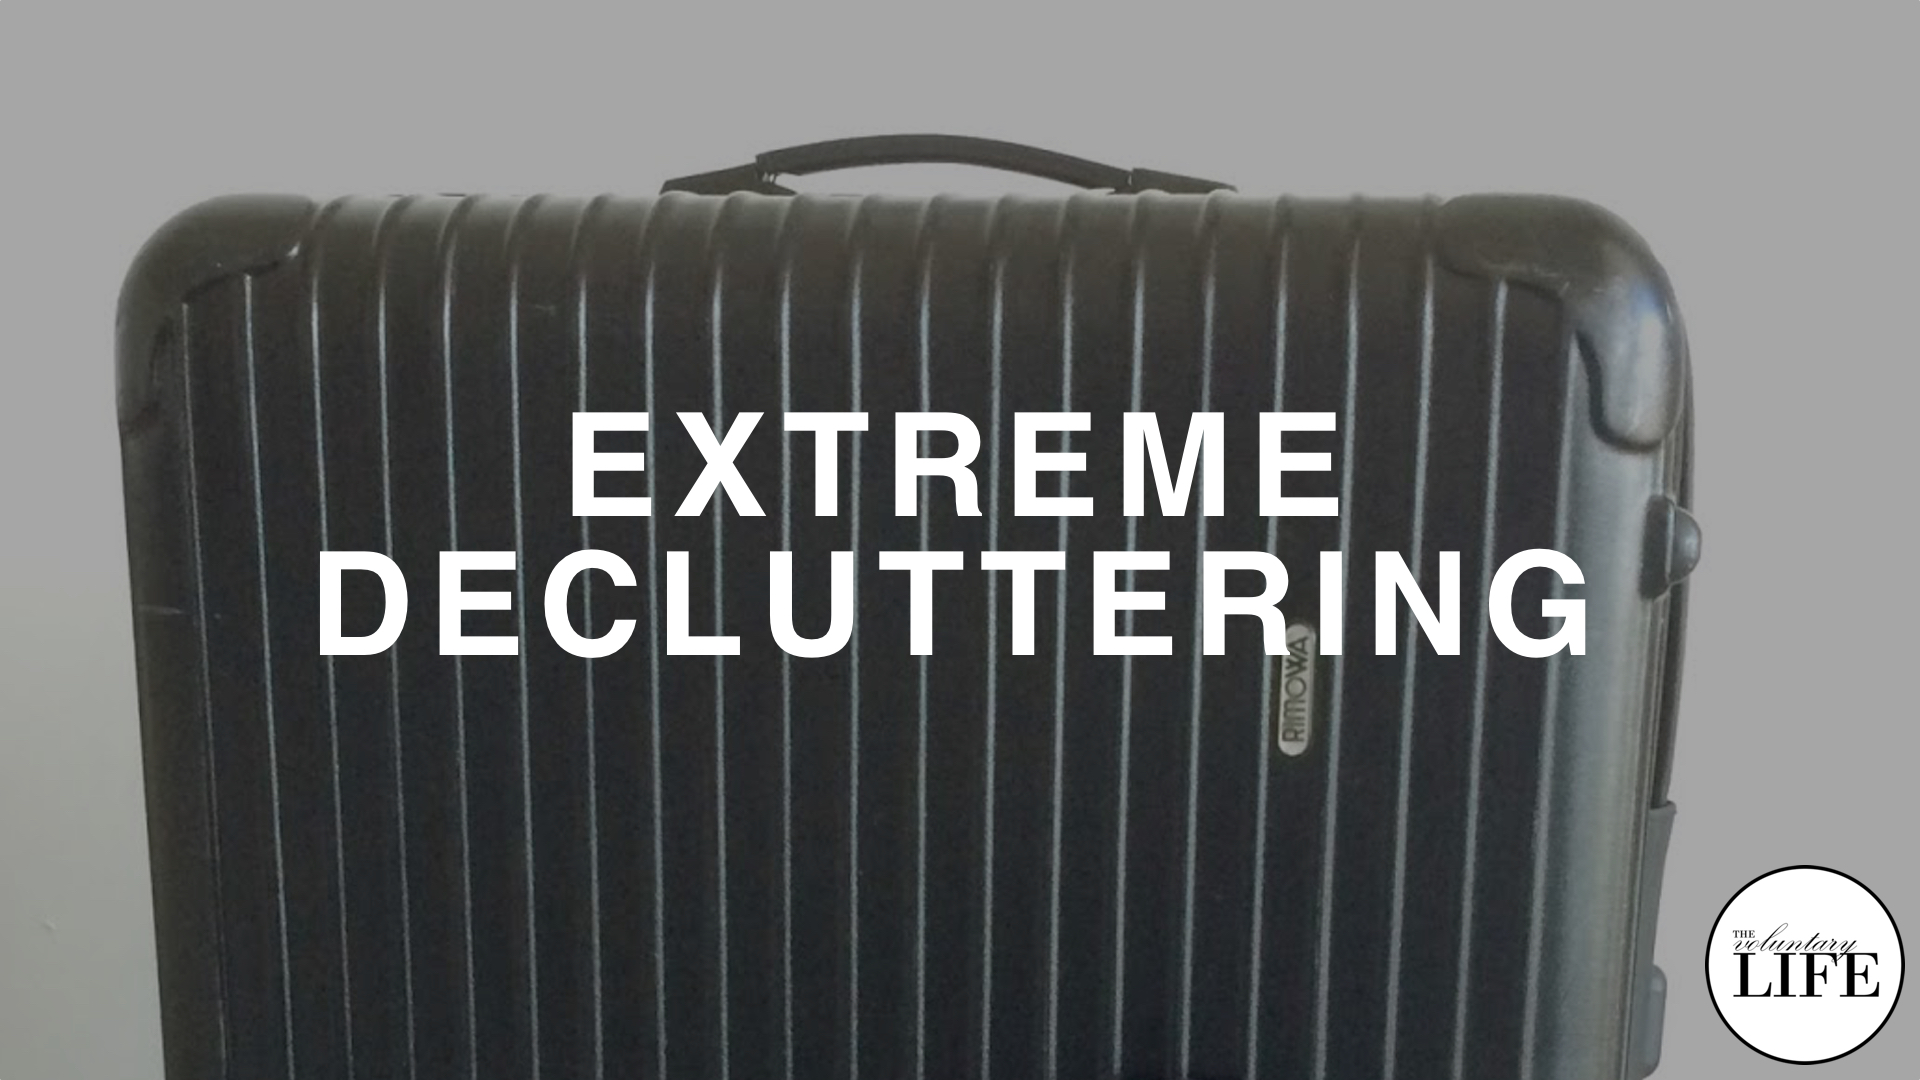 215 Extreme Decluttering